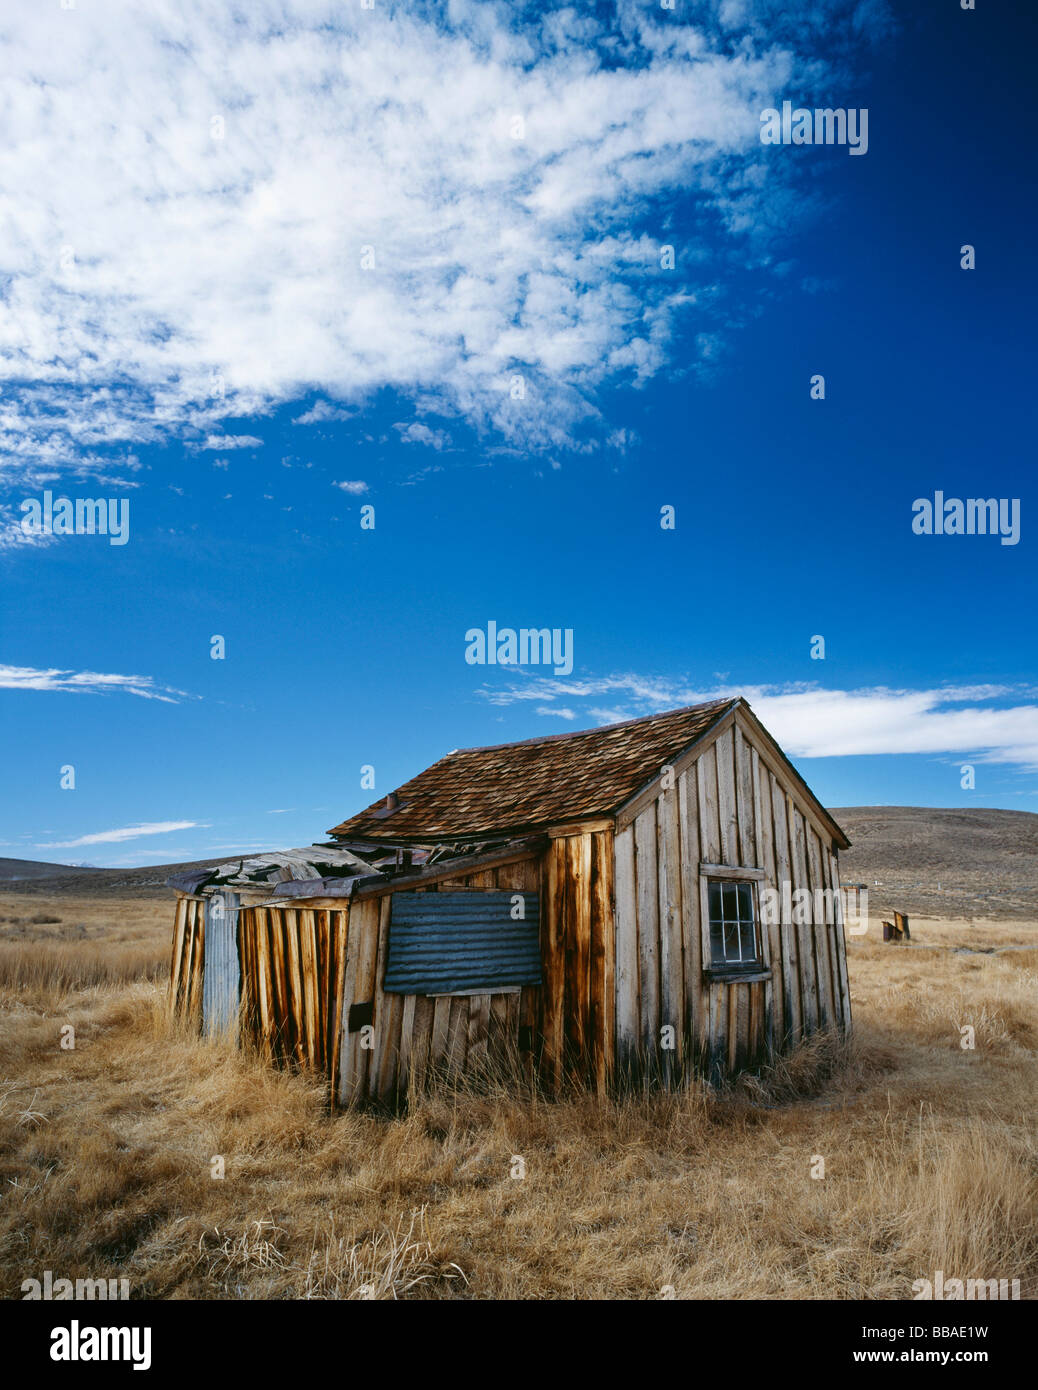 A wooden shack in a field, Bodie State Historic Park, California, USA - Stock Image